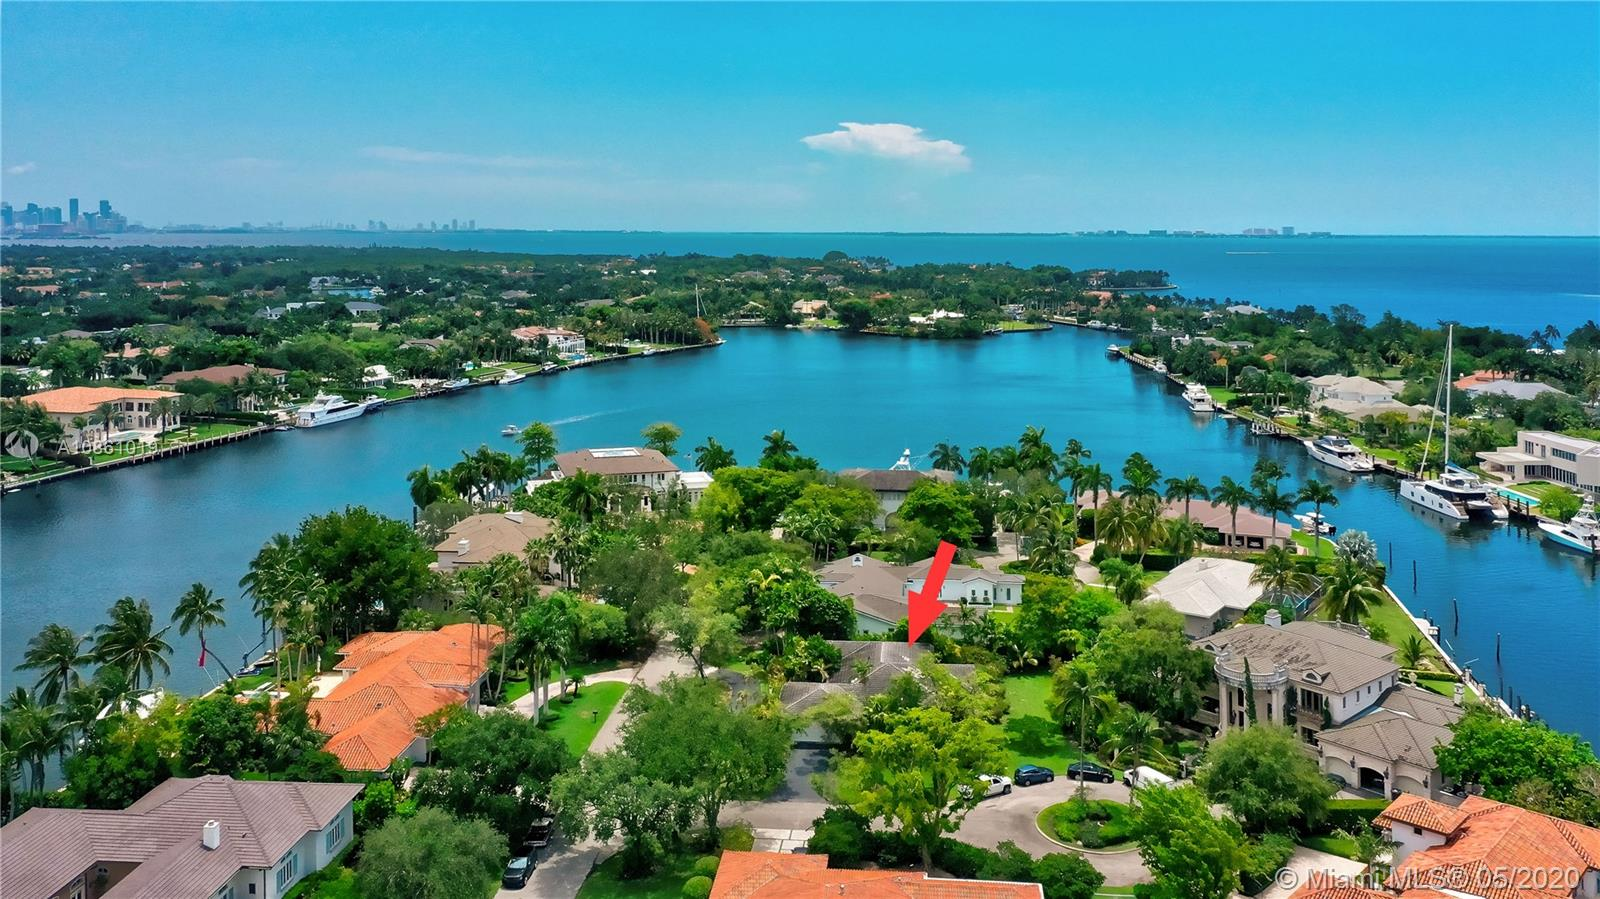 Lovely corner lot rimmed with native oaks in highly desirable Old Cutler Bay. Custom-build your dream home. Perched on no-thru Reinante, the elevated 16,617 SF site is bounded by a quiet cul-de-sac. Enjoy 24-hour gated security, a roaming guard, Old Cutler Bay cachet & sea breezes without waterfront upkeep. Ideally situated near top-tier schools, renowned hospitals, world-class parks, boutique shopping & cosmopolitan dining. Your entrée into Old Cutler Bay!